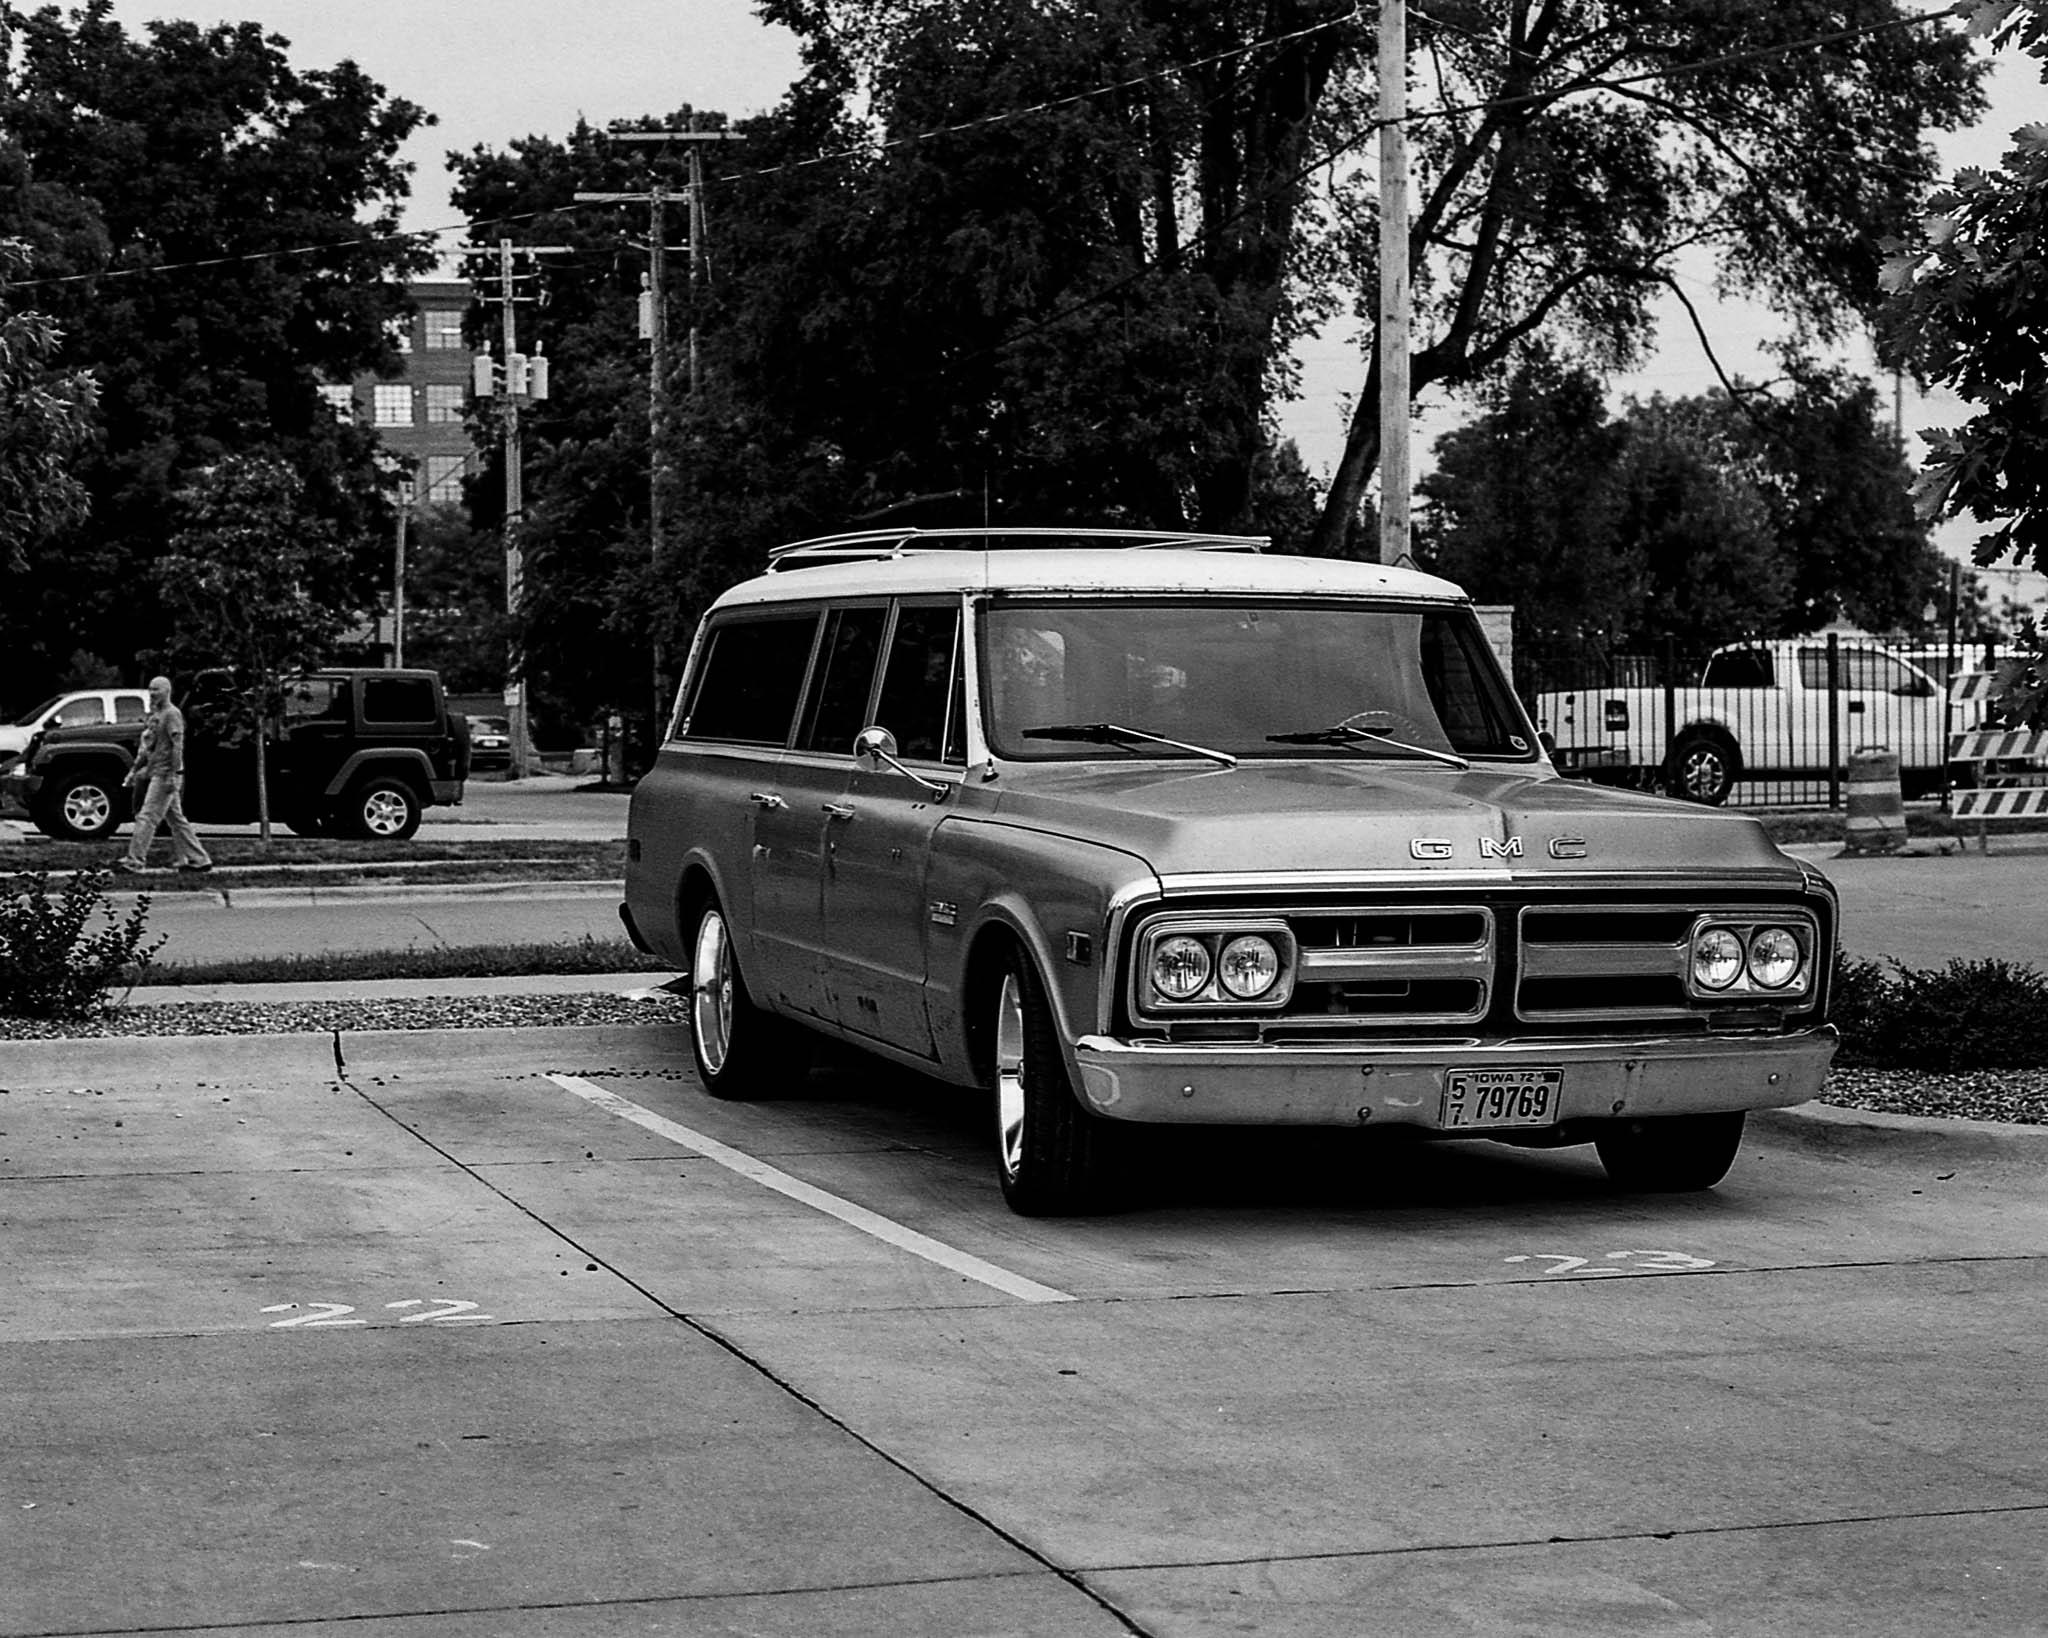 An old GMC station wagon parked outside Analog Vault in the New Bo neighborhood